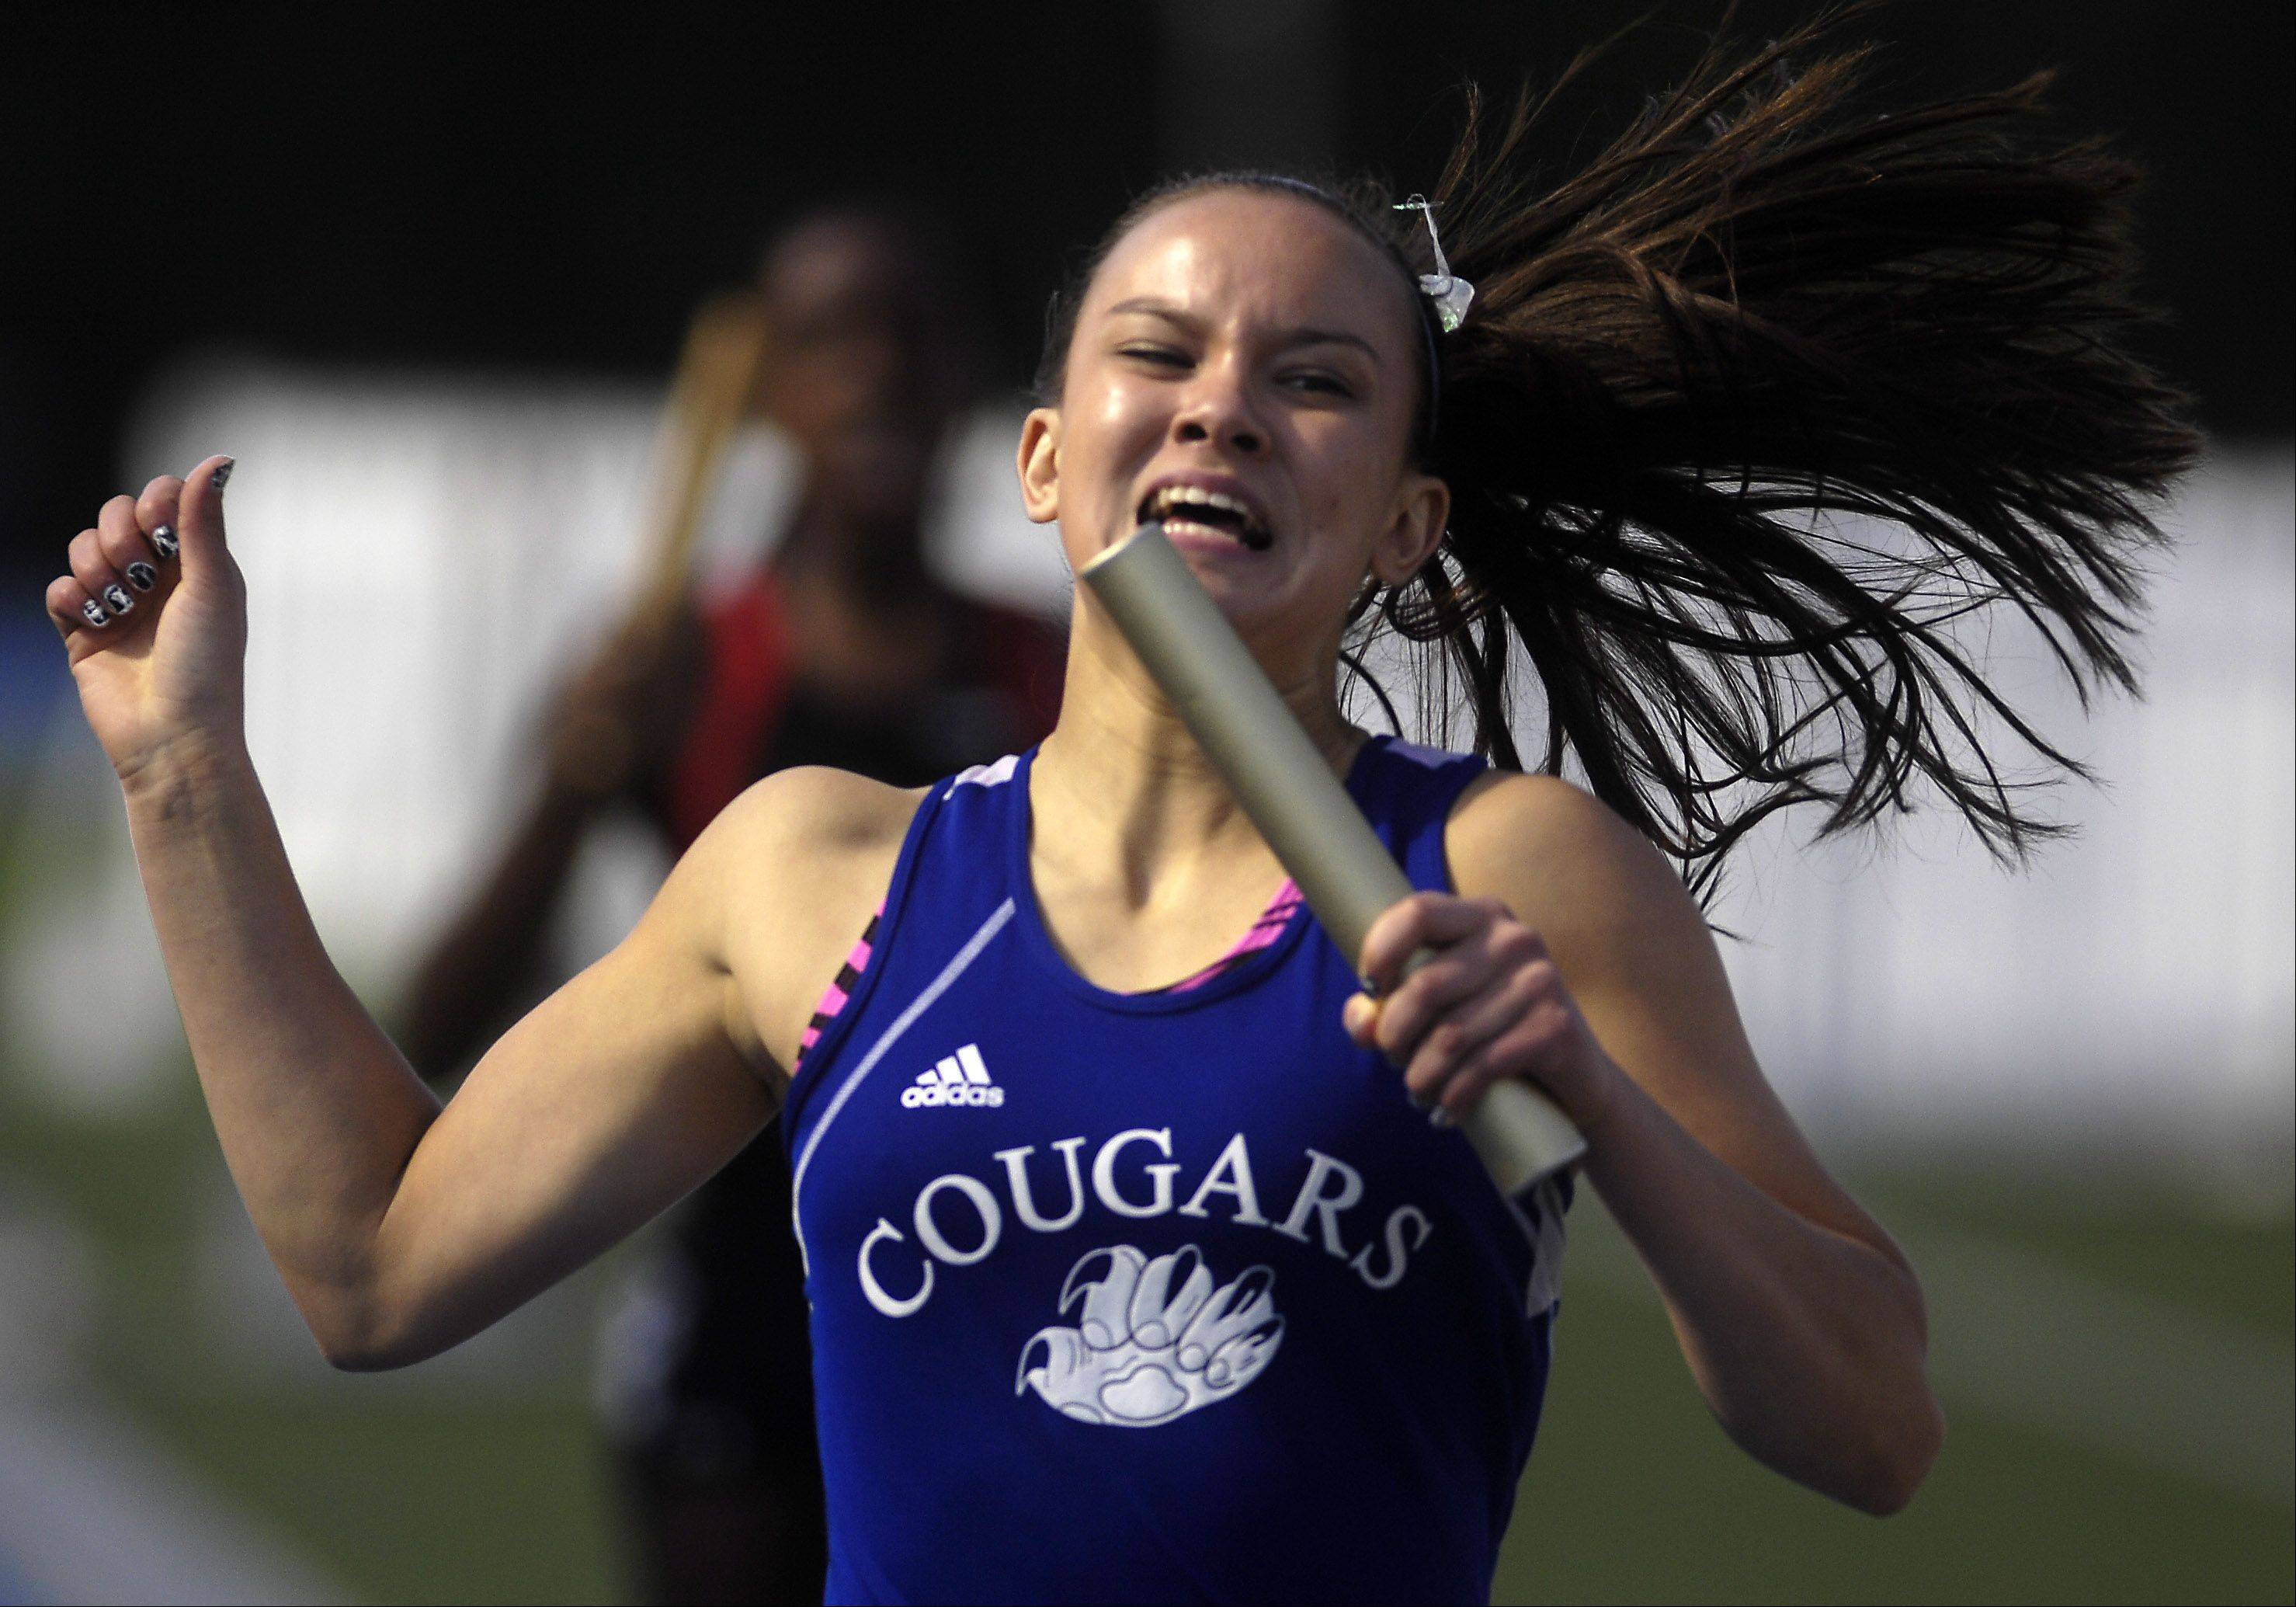 Vernon Hills' Alli Tran anchors the Cougars to a third-place finish in the 4x400-meter relay during last season's state finals.